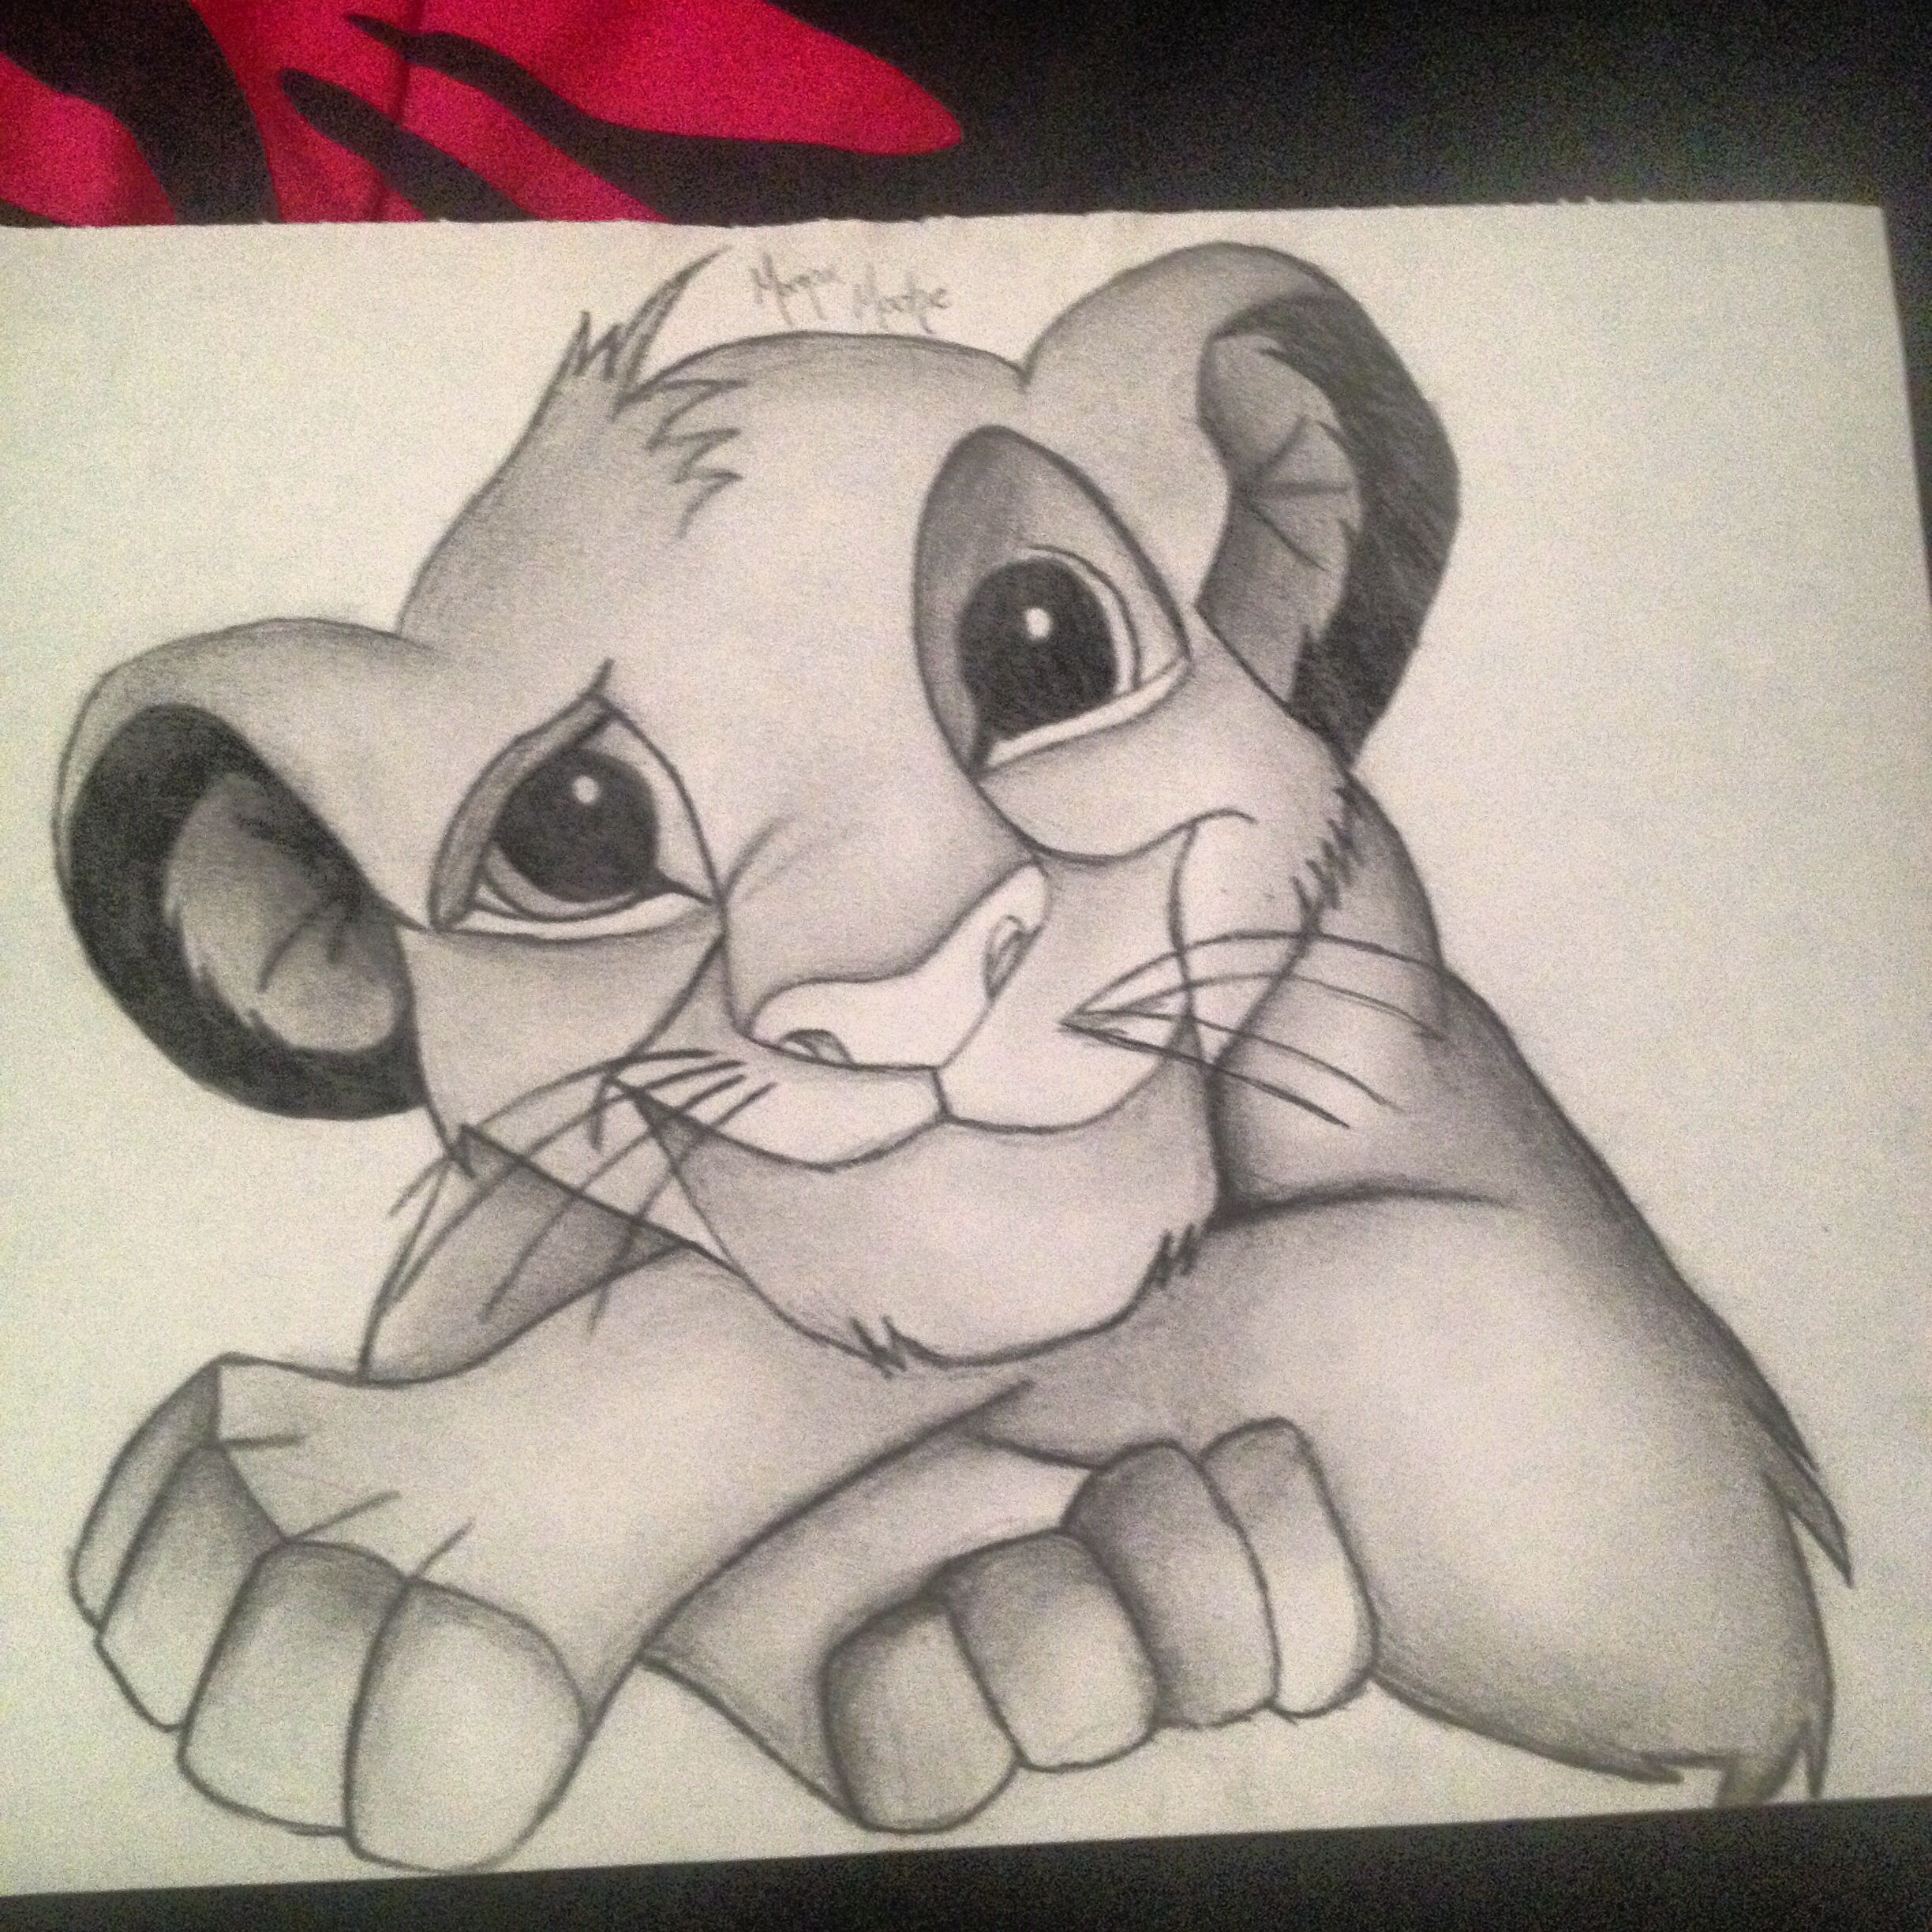 Drawing Of Simba Such A Cute Little Kitty Little Disney Addict